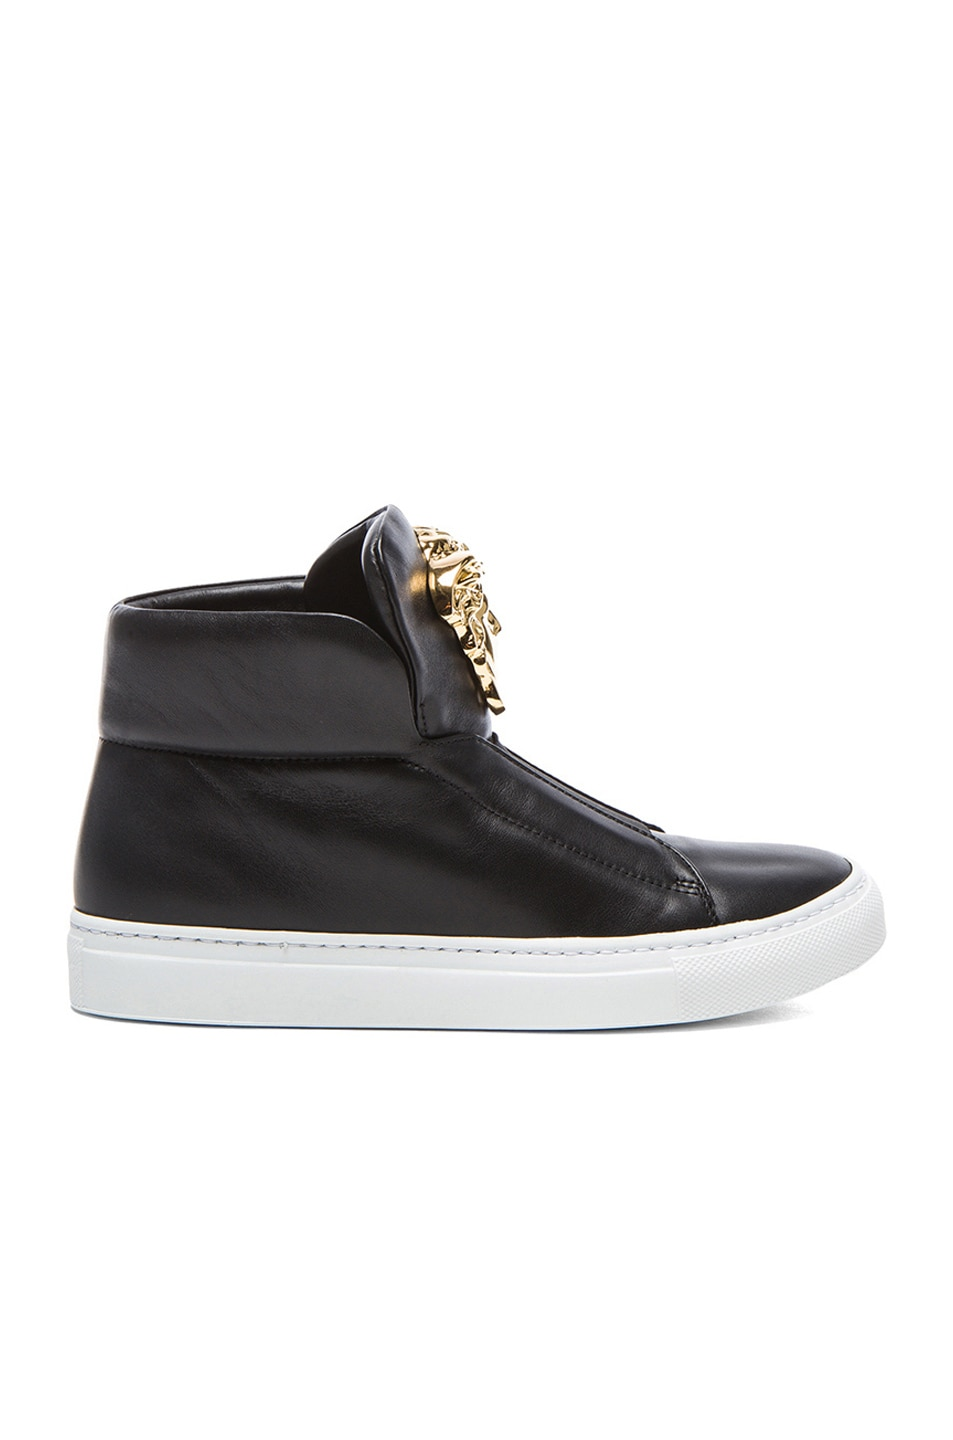 Image 1 of VERSACE Medusa Head Laceless Leather Sneakers in Black & Gold